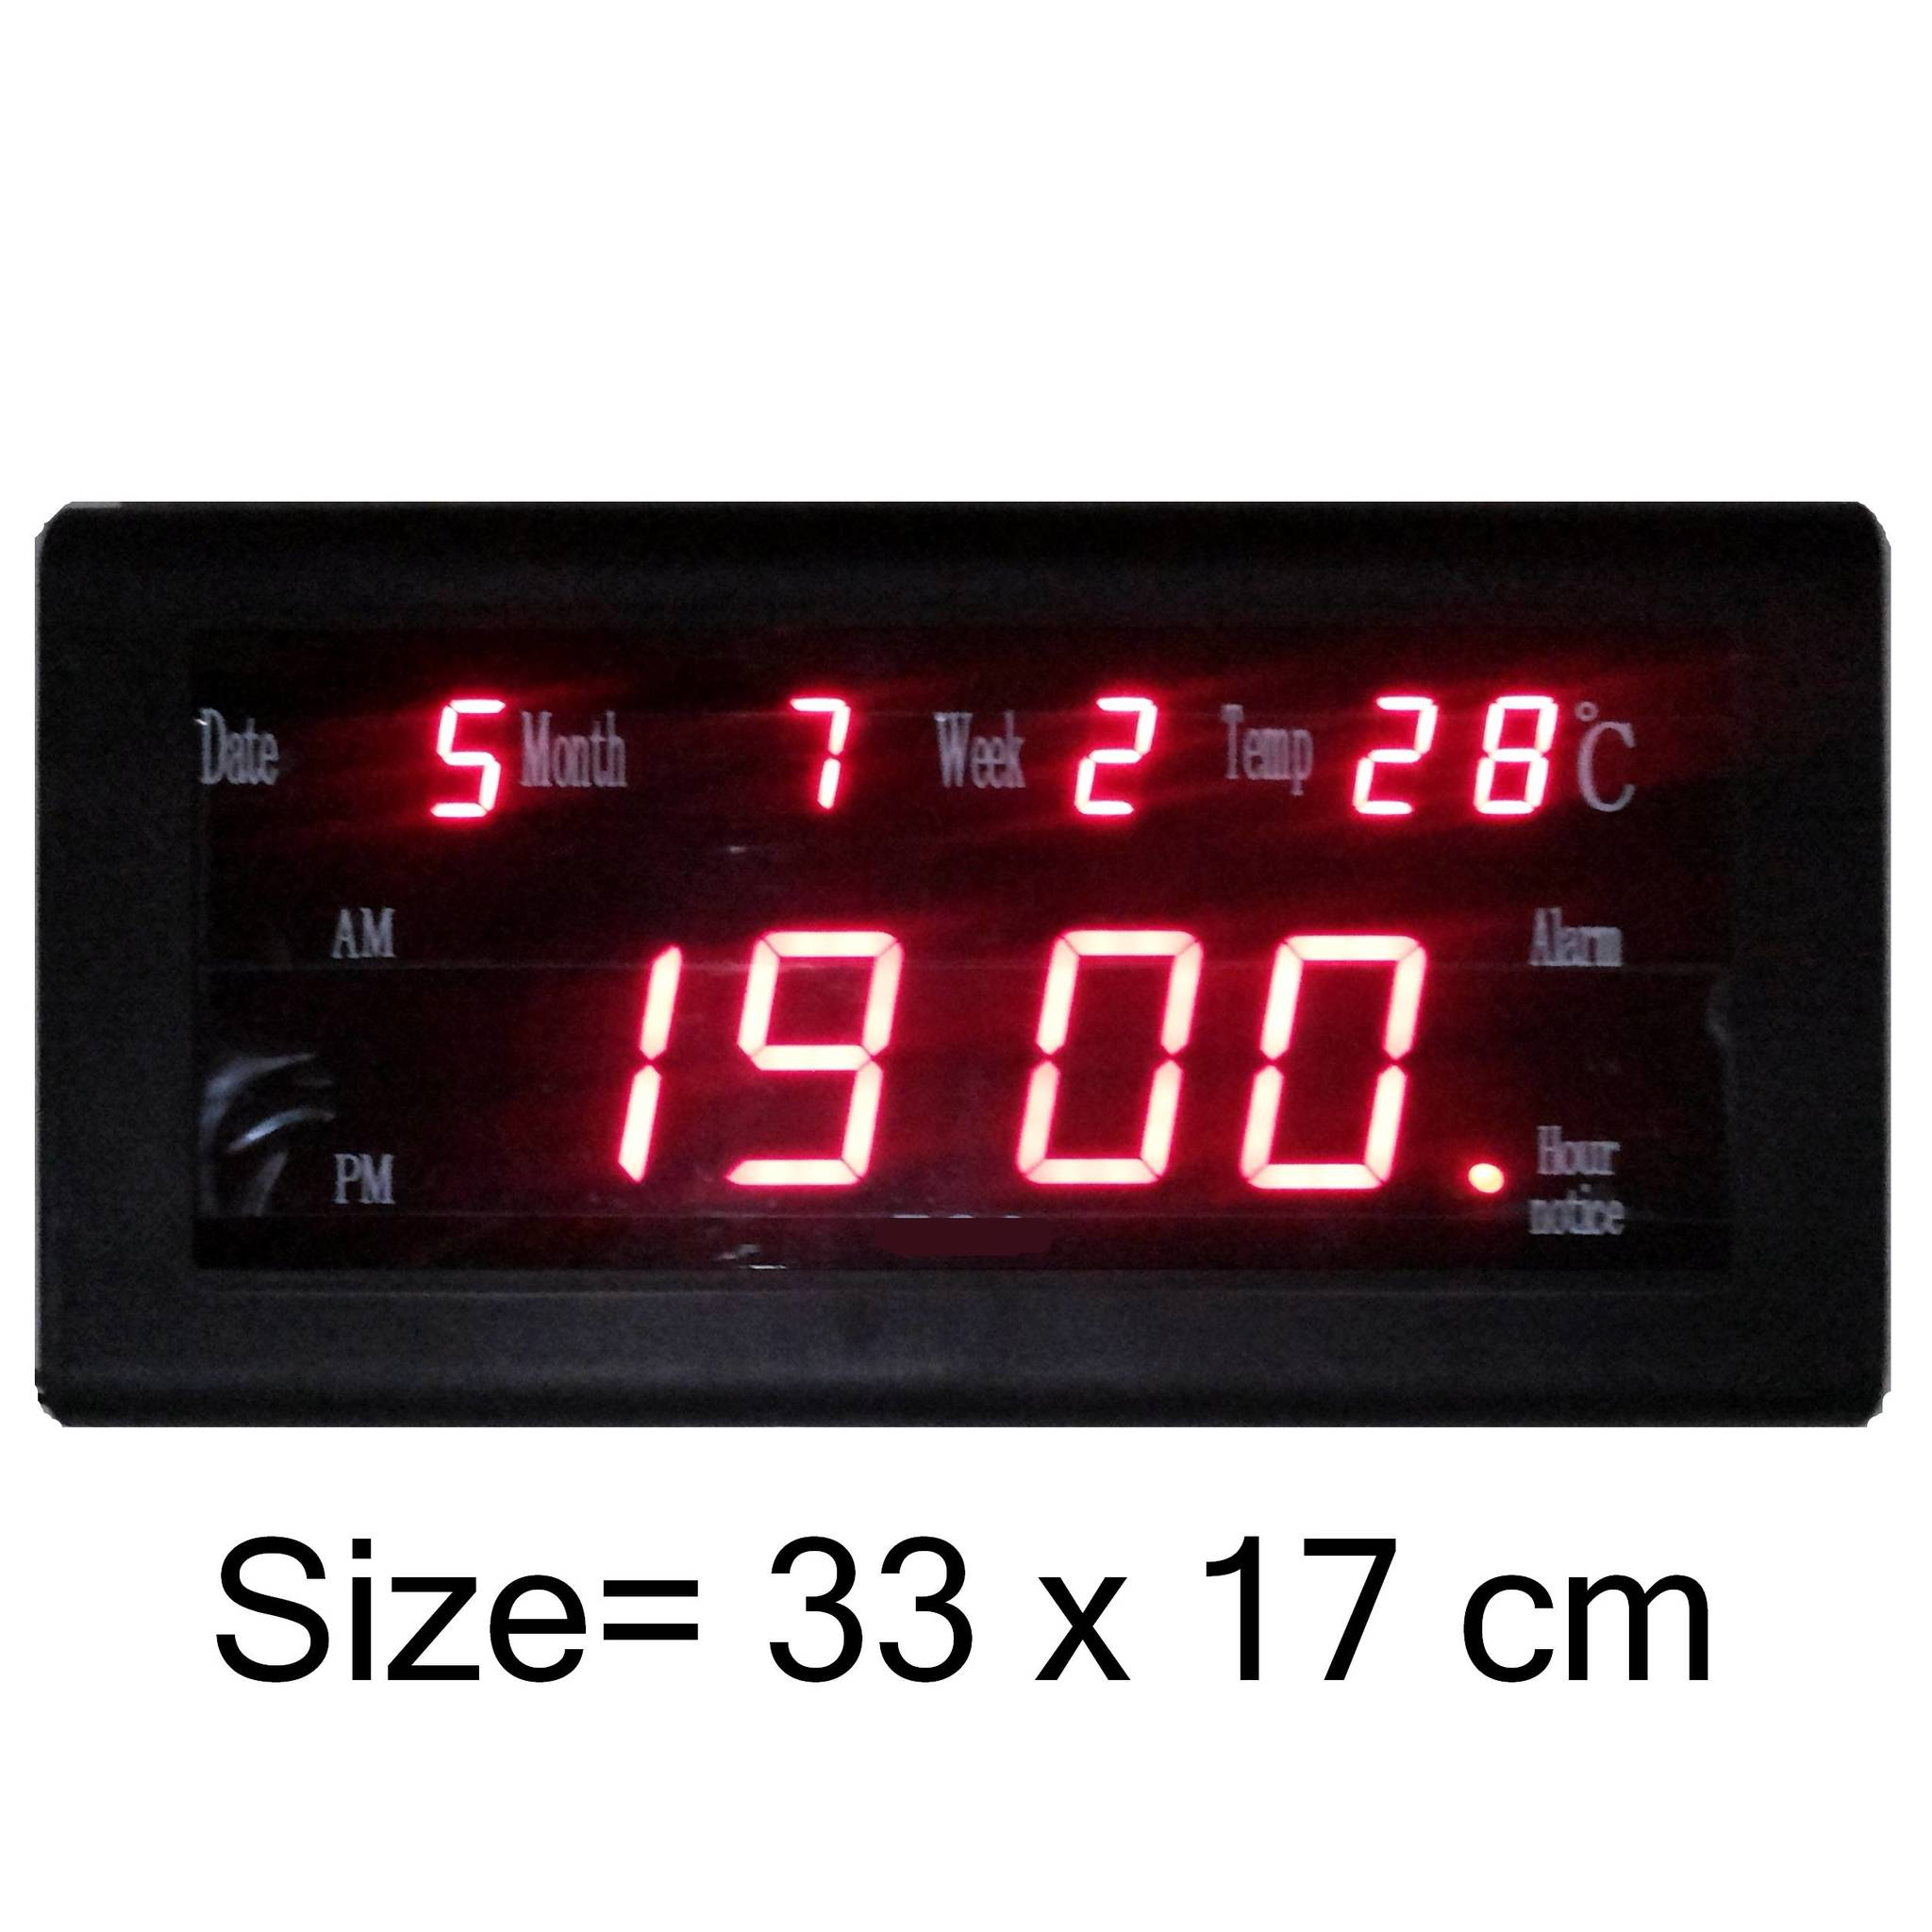 Jual Jam Dinding Digital LED Digital Ukuran Besar 33 cm x 17 cm +Themometer -